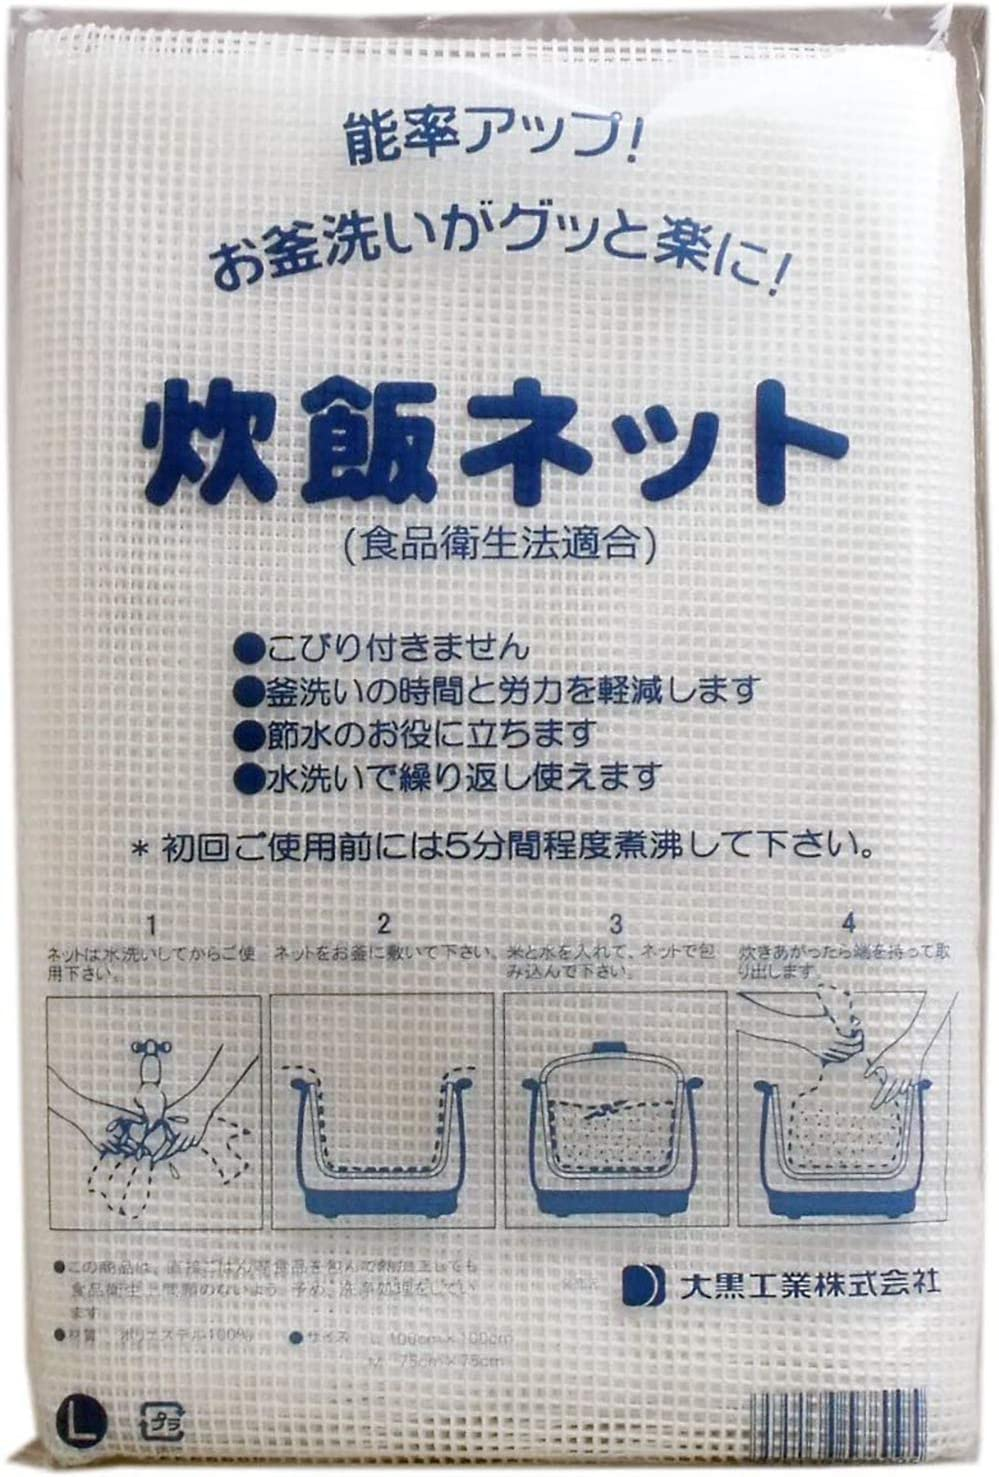 Tikusan Rice Net Sushi Rice Cooking Net Polyester Napkin Reusable for Commercial Restaurant Rice Cooker Use Made in Japan (L Size (40